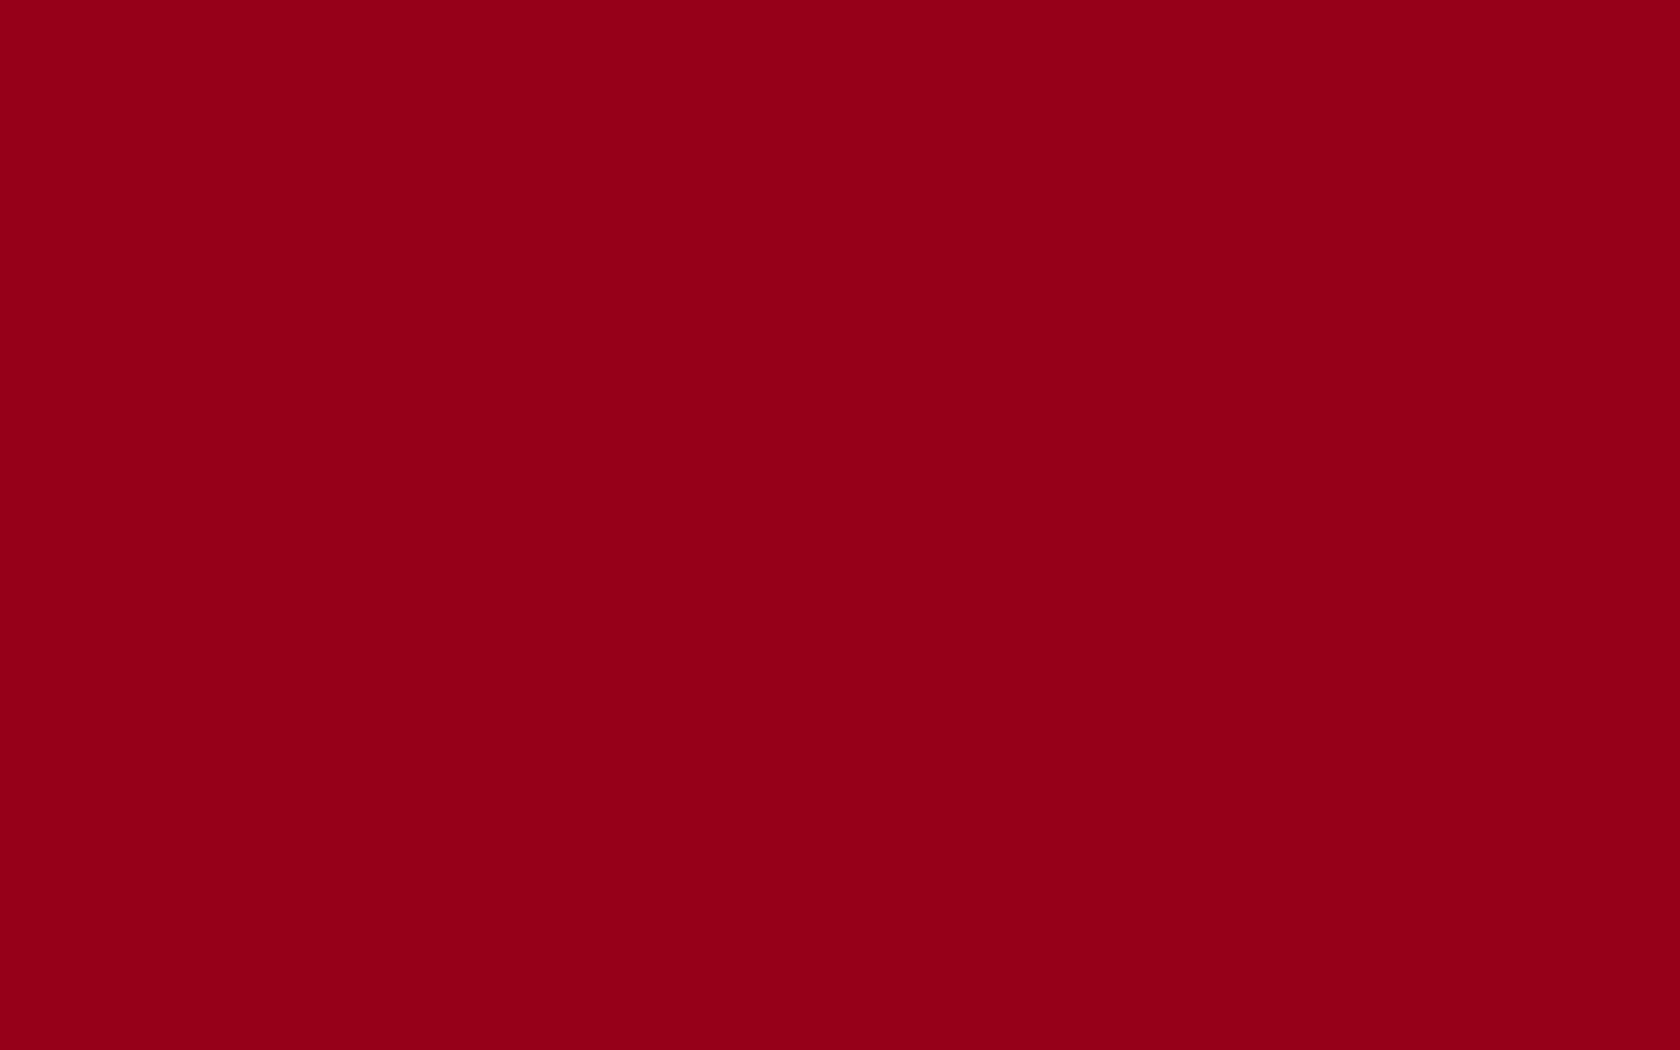 1680x1050 Carmine Solid Color Background